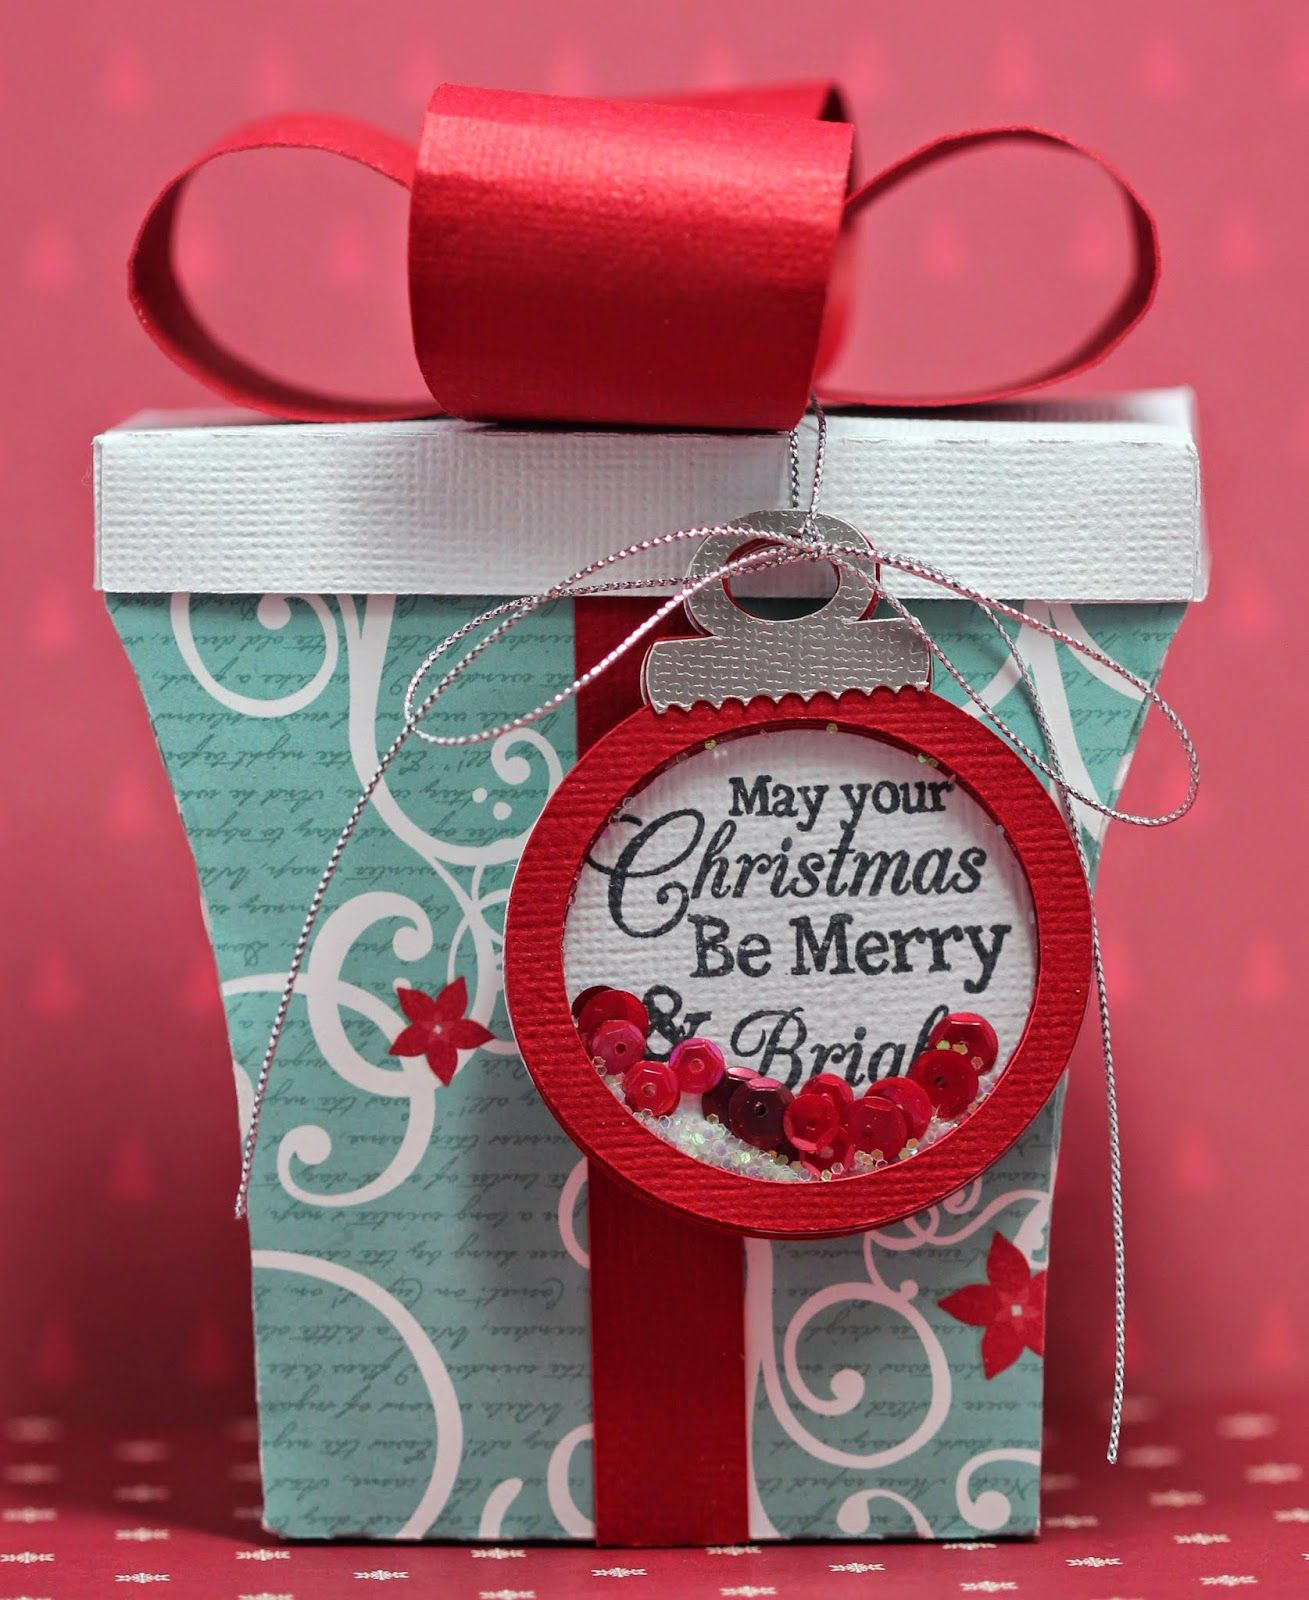 FREE SVG for present box and shaker ornament tag ALSO a